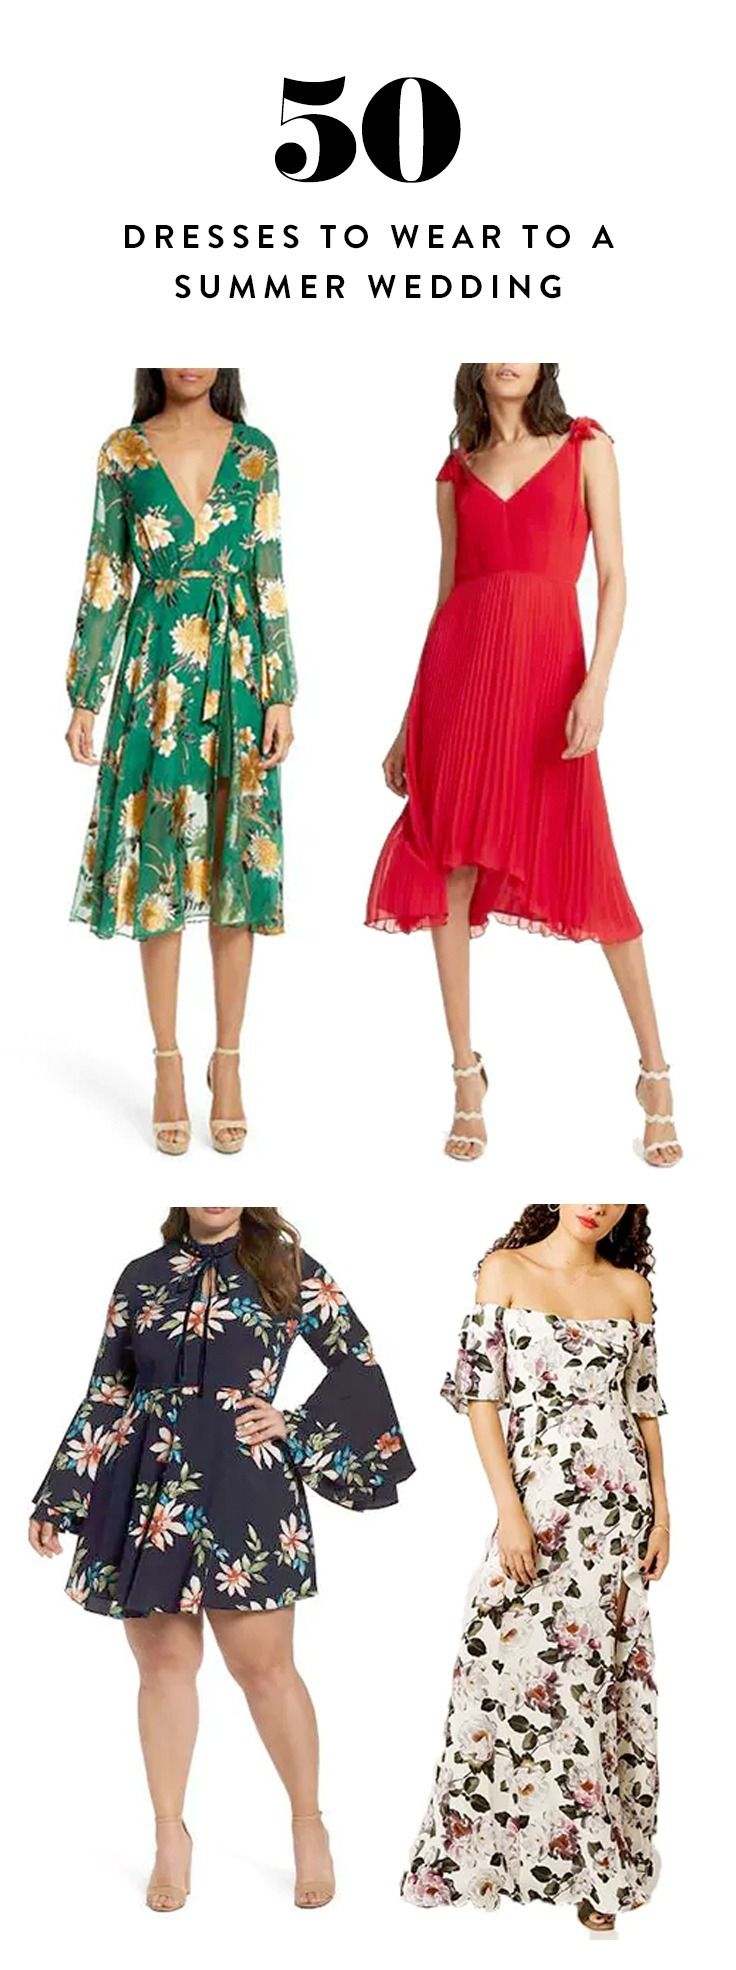 Here are 50 wedding guest dresses for every budget, location and dress code that should make this season a total breeze.